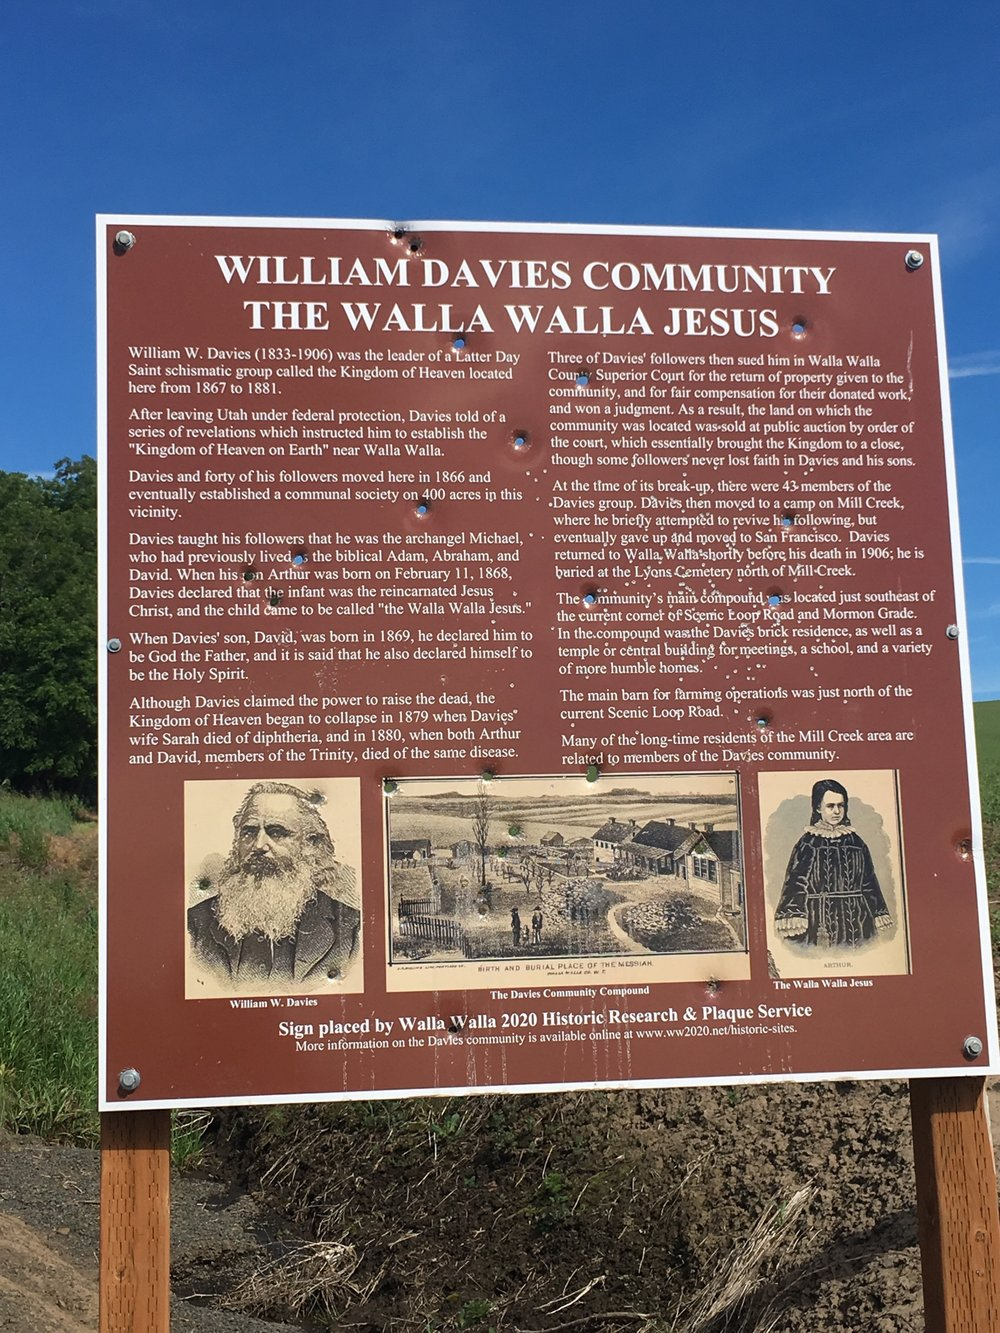 Sign for William Davies' Community